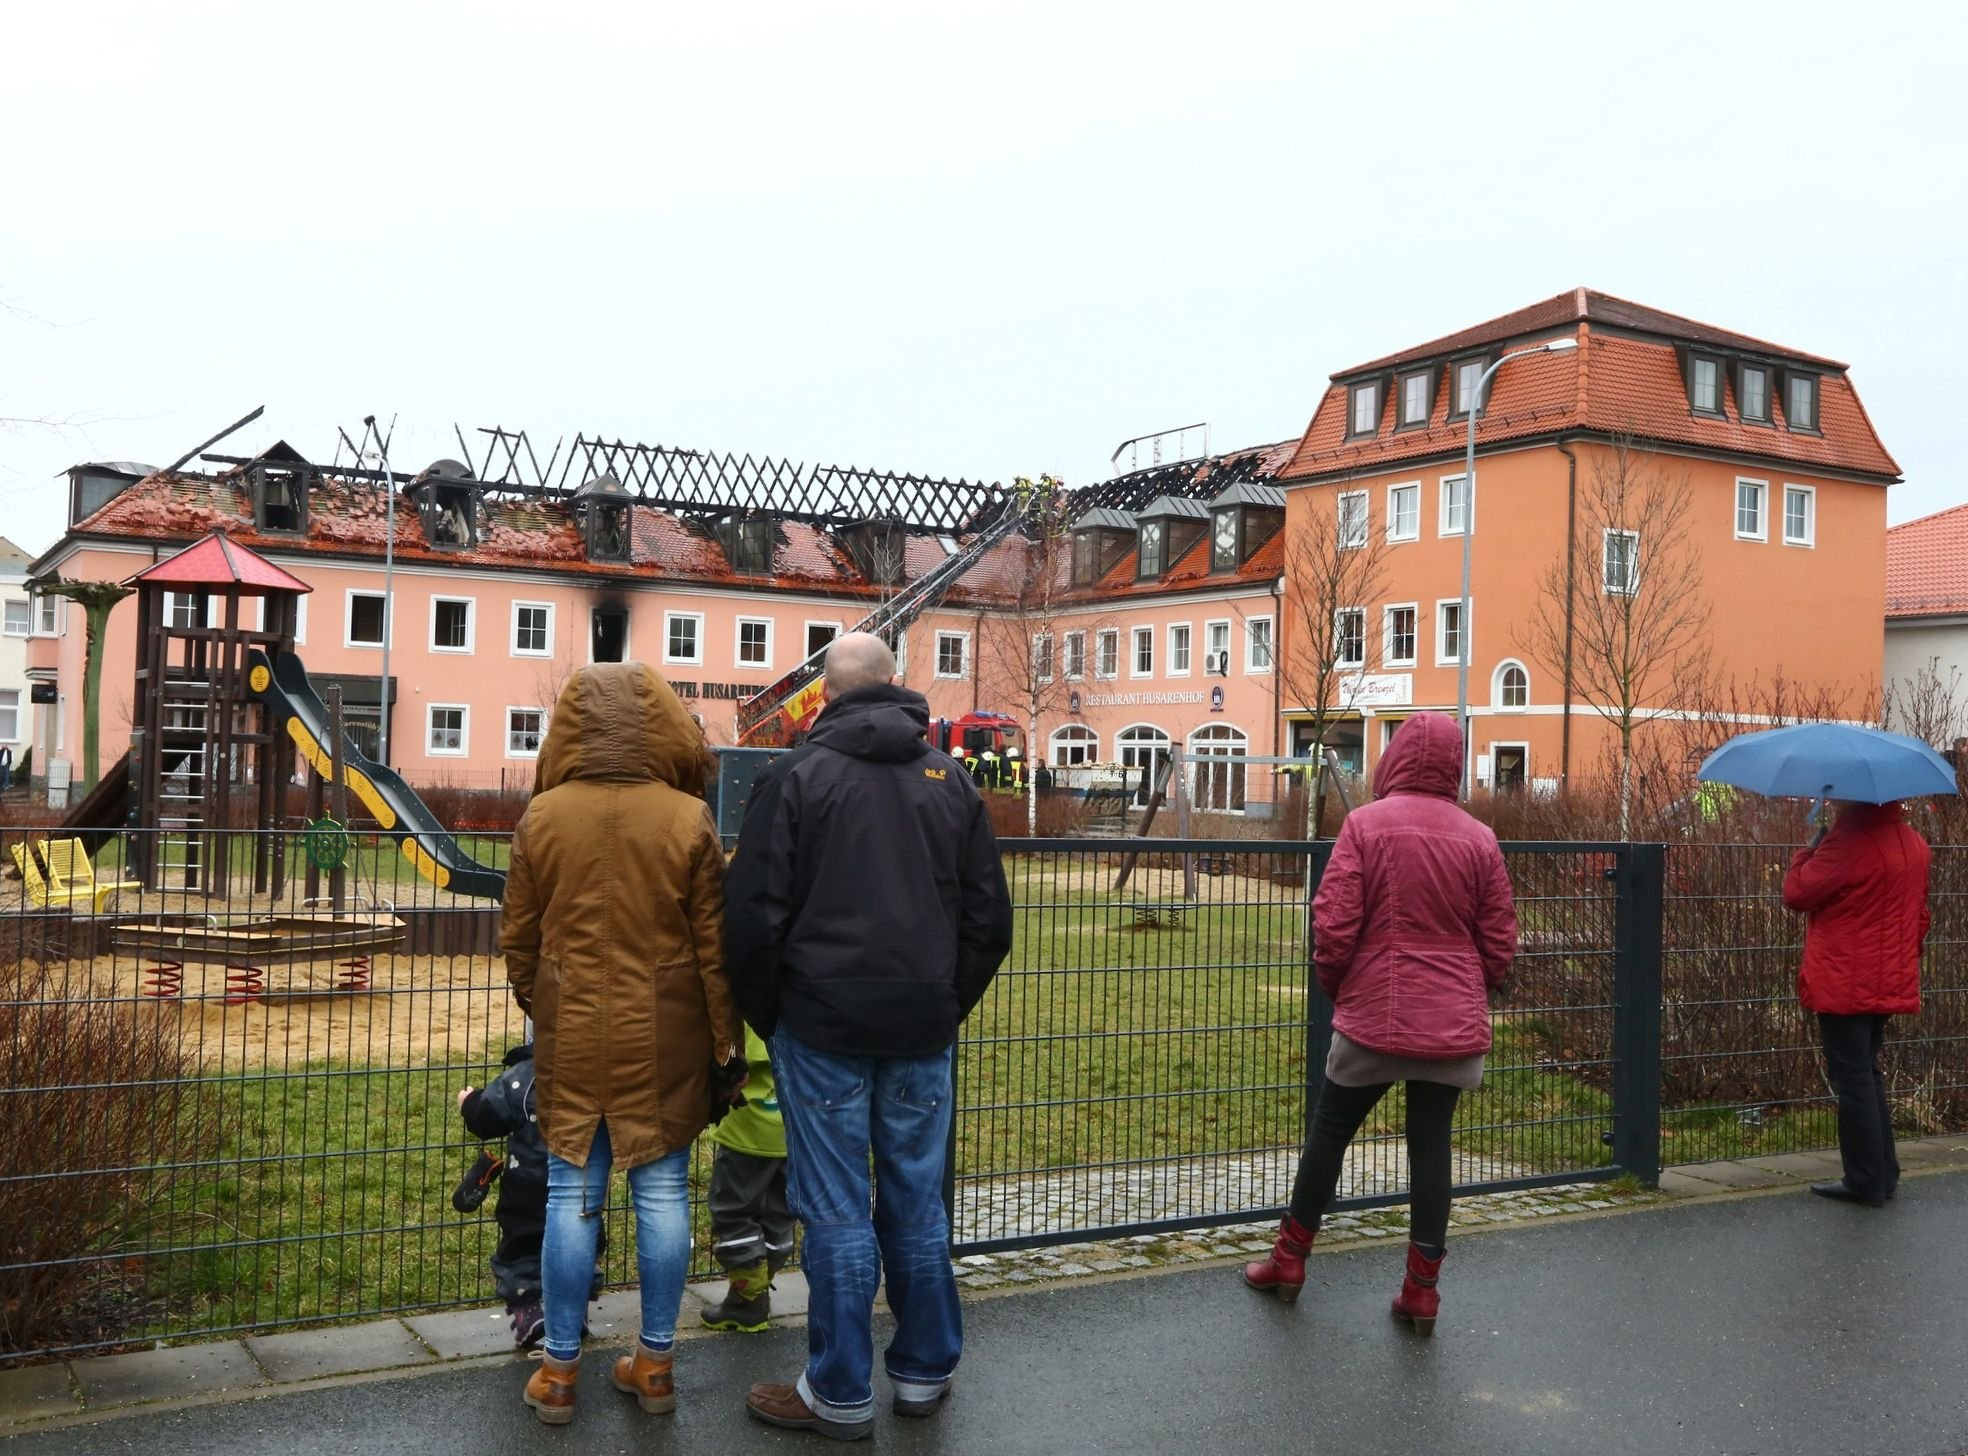 People look at the burnt-out roof of a former hotel that was under reconstruction to become a shelter for migrants in Bautzen, Germany, Feb. 21, 2016.